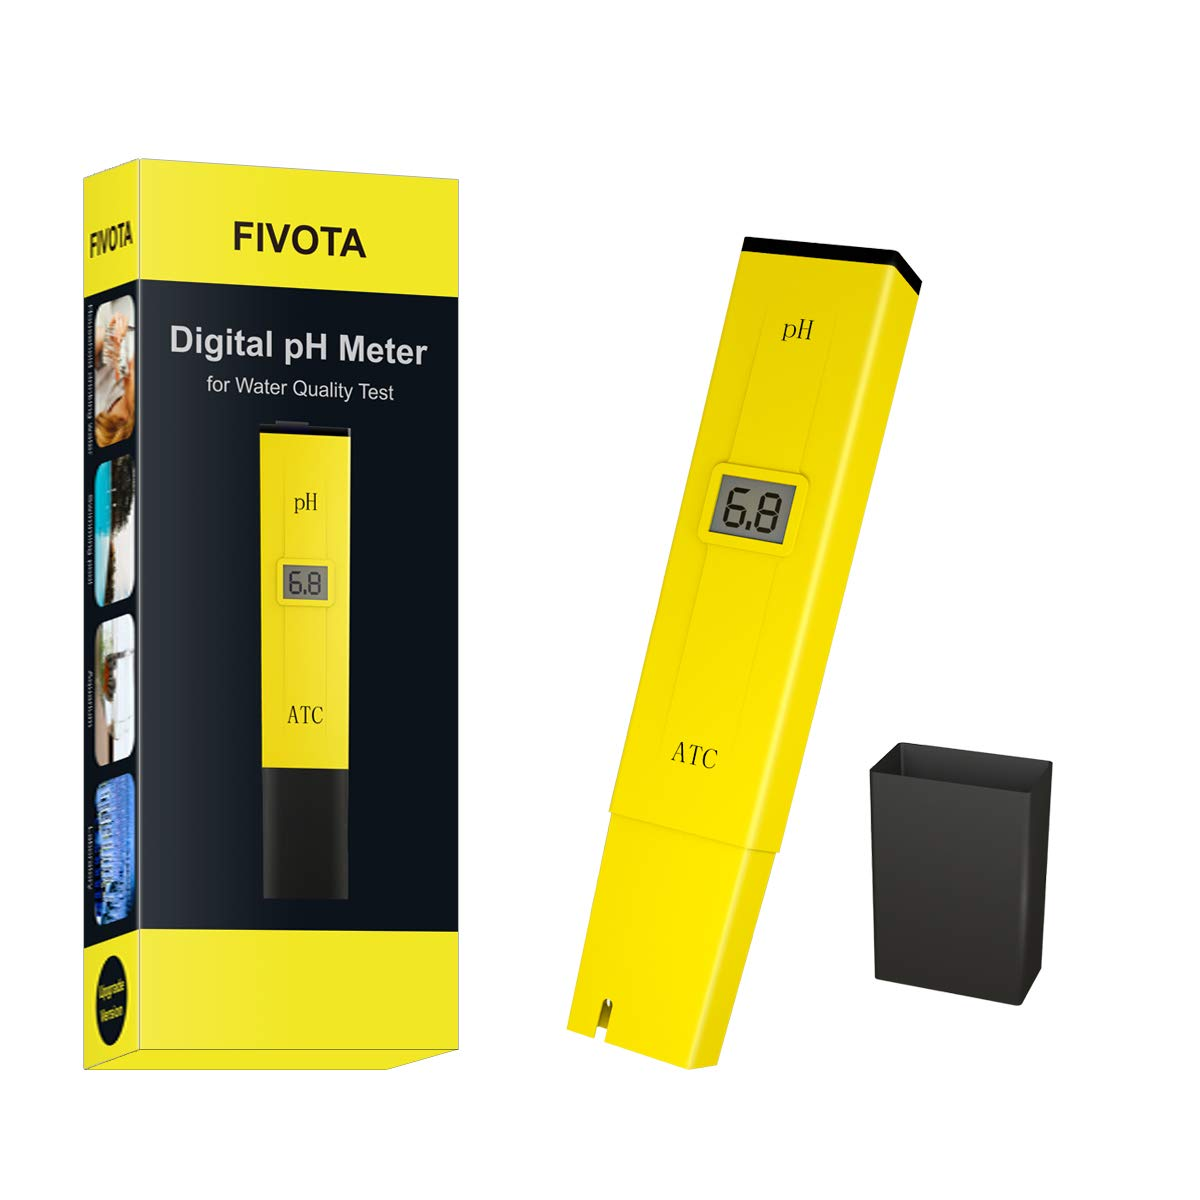 Fivota pH Meter, Digital pH Tester/Water Quality Tester for Drinking Water, Swimming Pools, Aquariums, Hydroponics, ATC Function, LCD Display